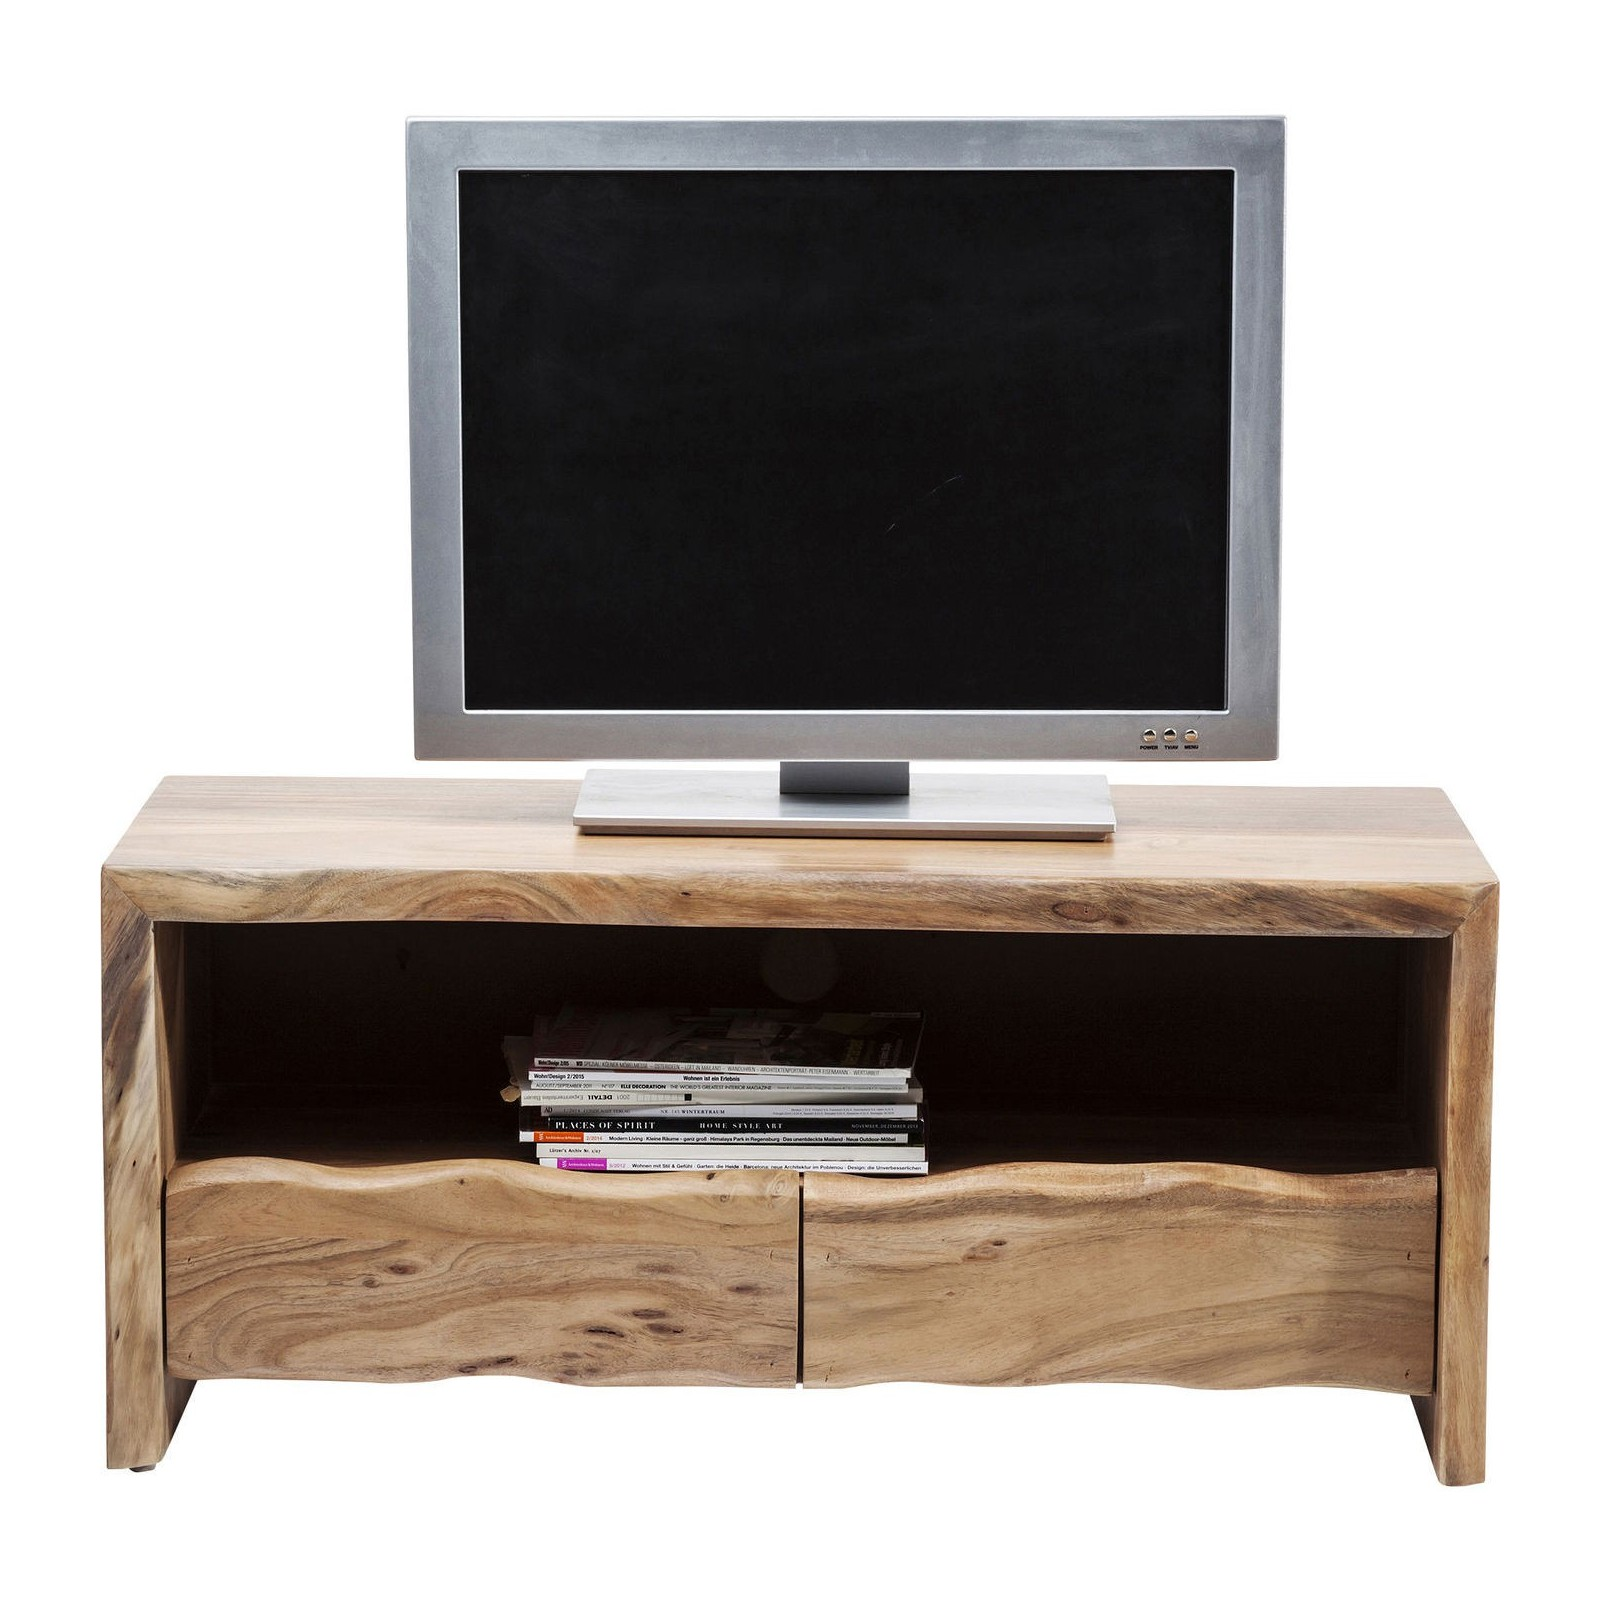 Meuble tv scandinave en bois pure nature kare design for Meuble bureau 100 cm